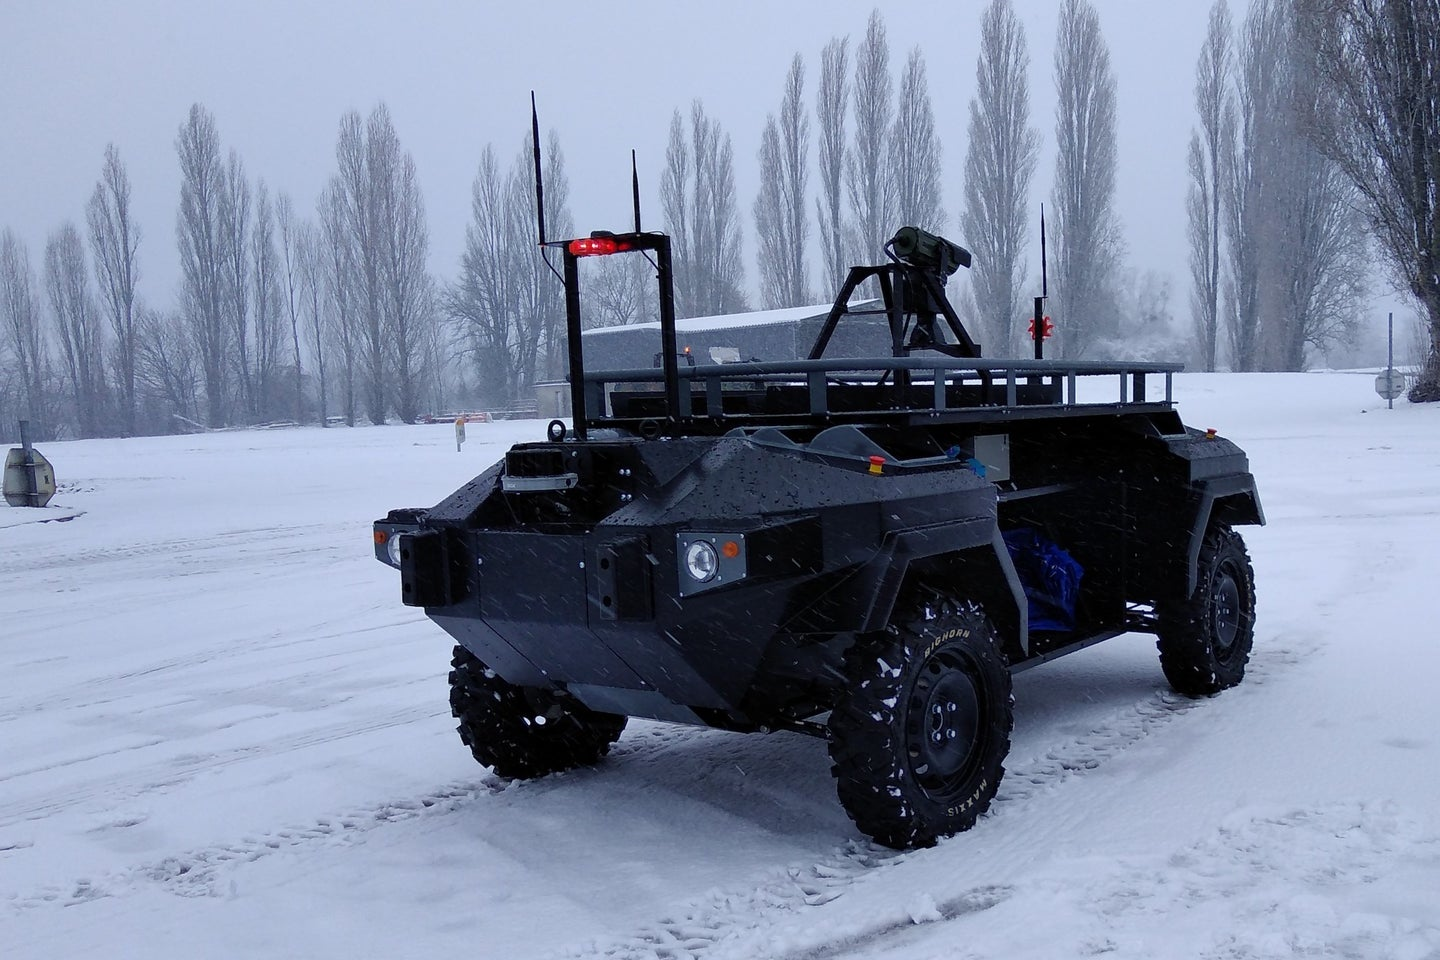 a robotic military vehicle in the snow